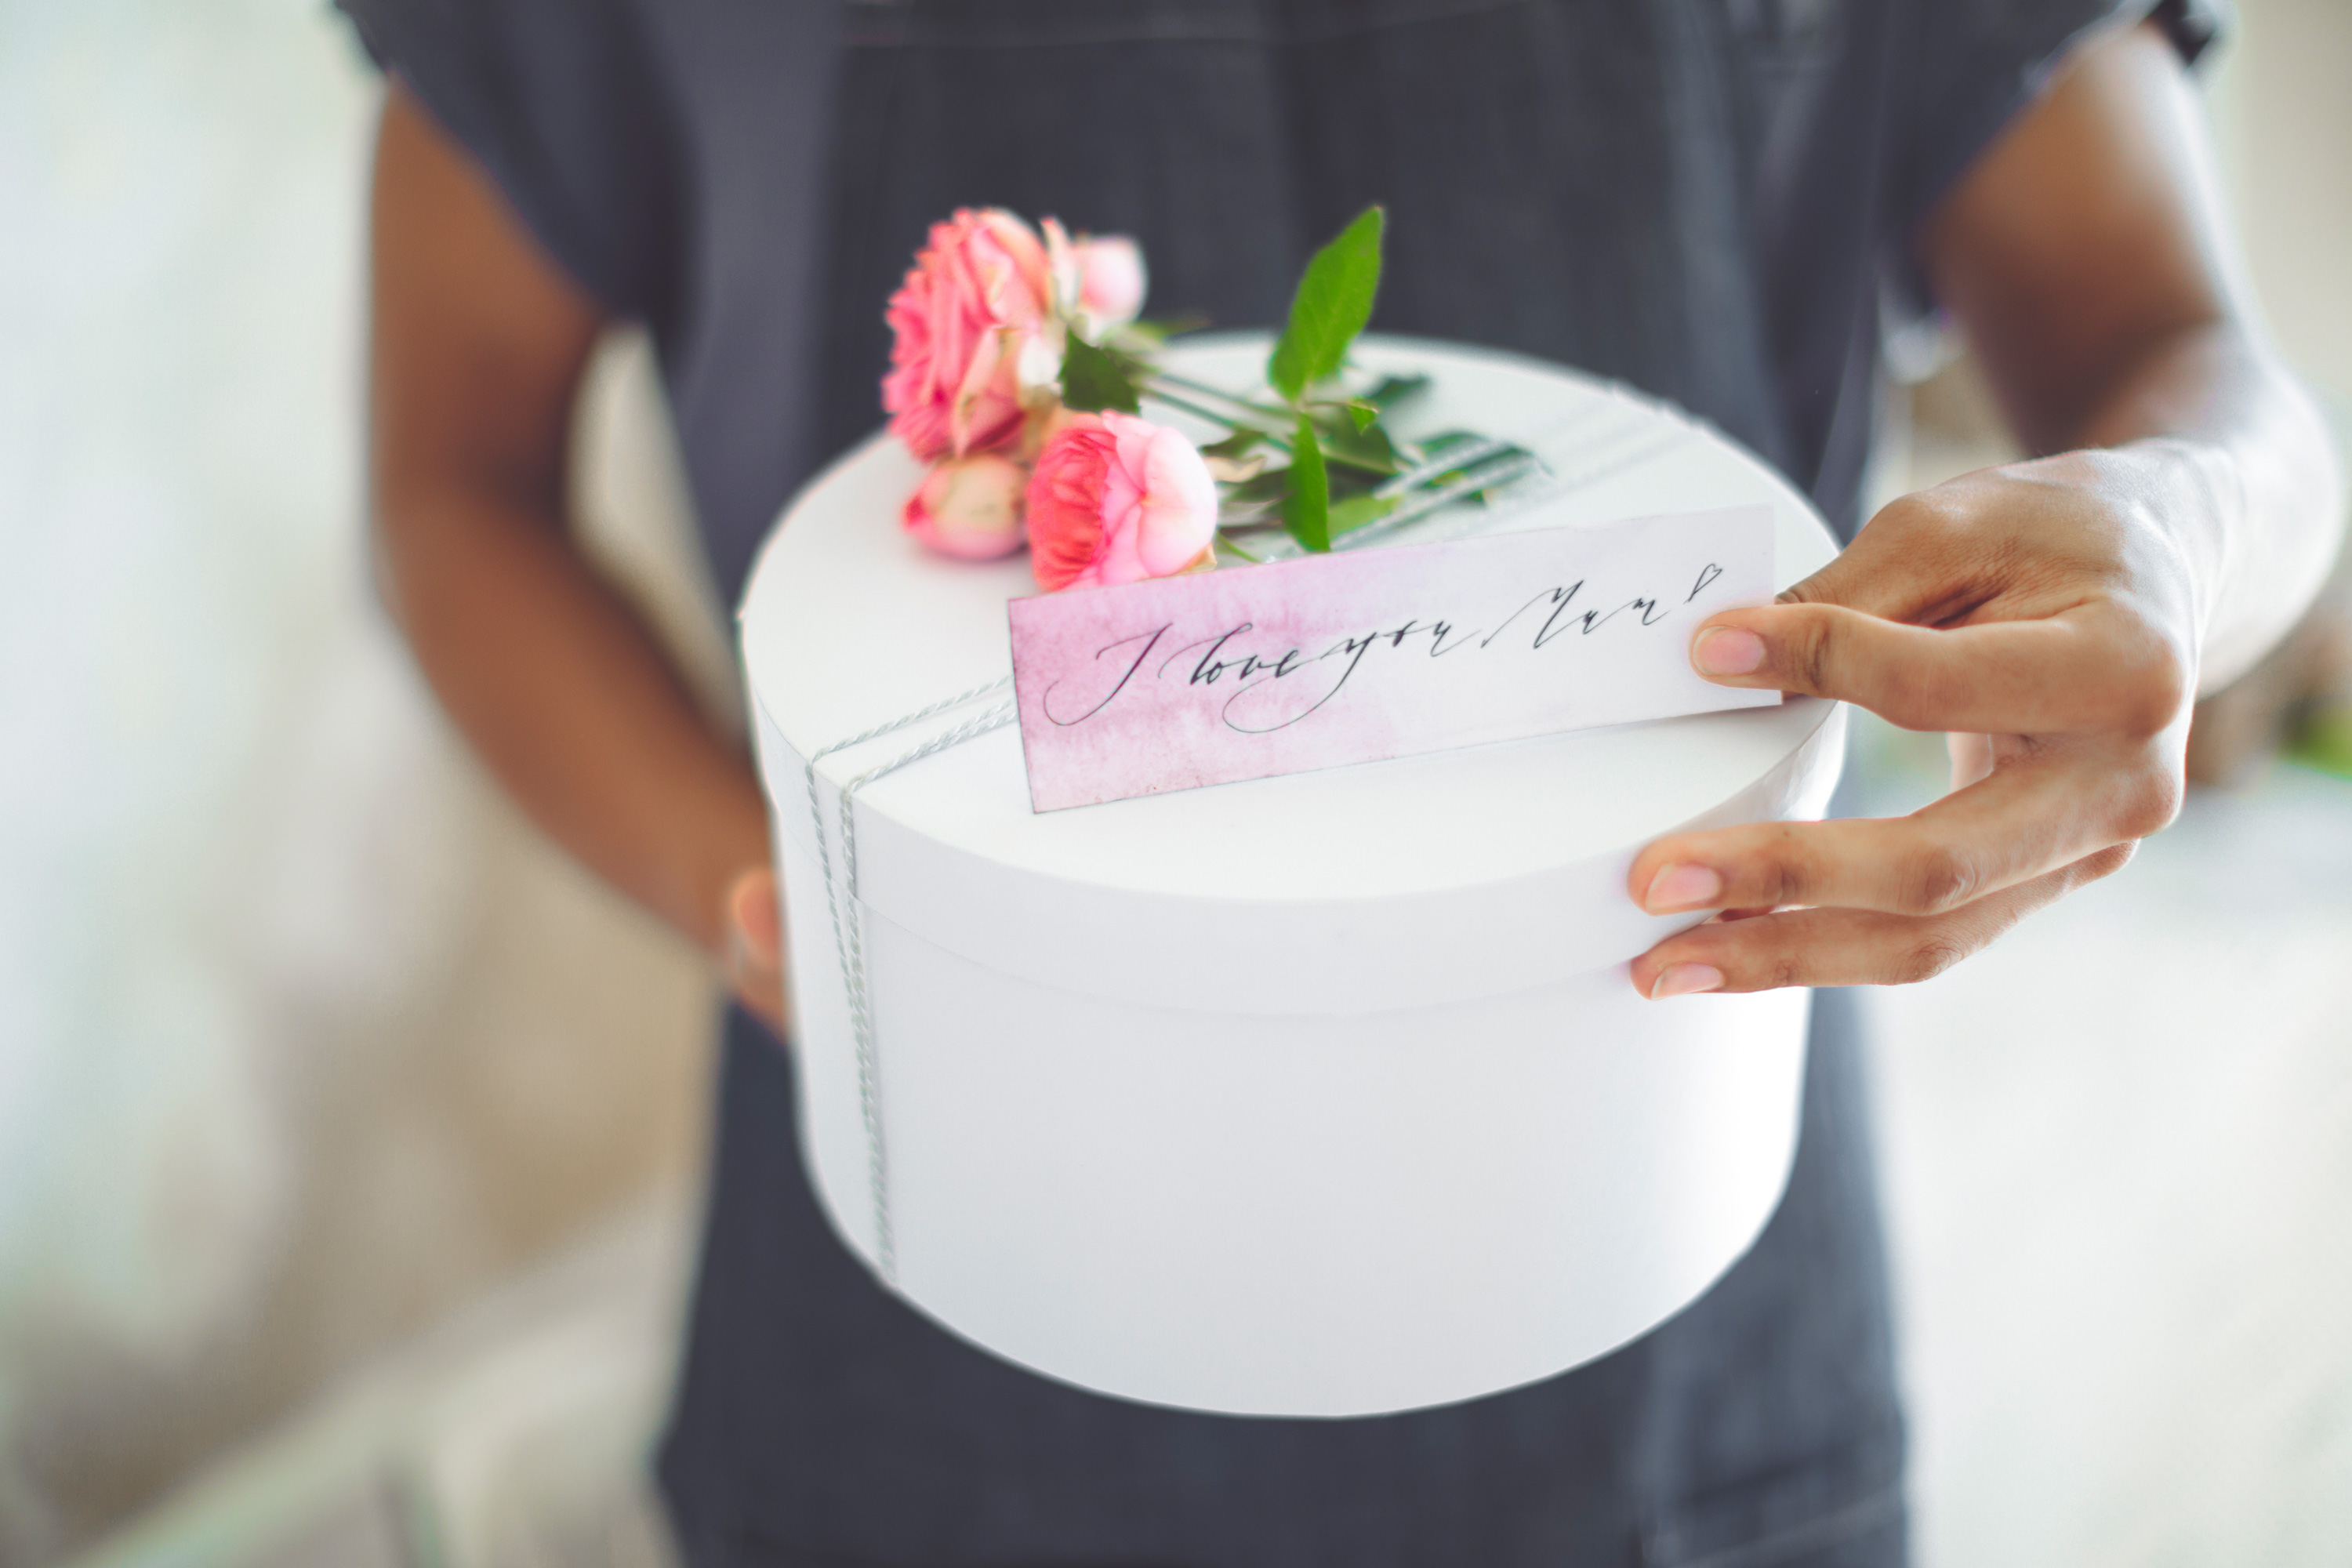 Here's How Much the Average Person Will Spend on a Mother's Day Gift in 2019